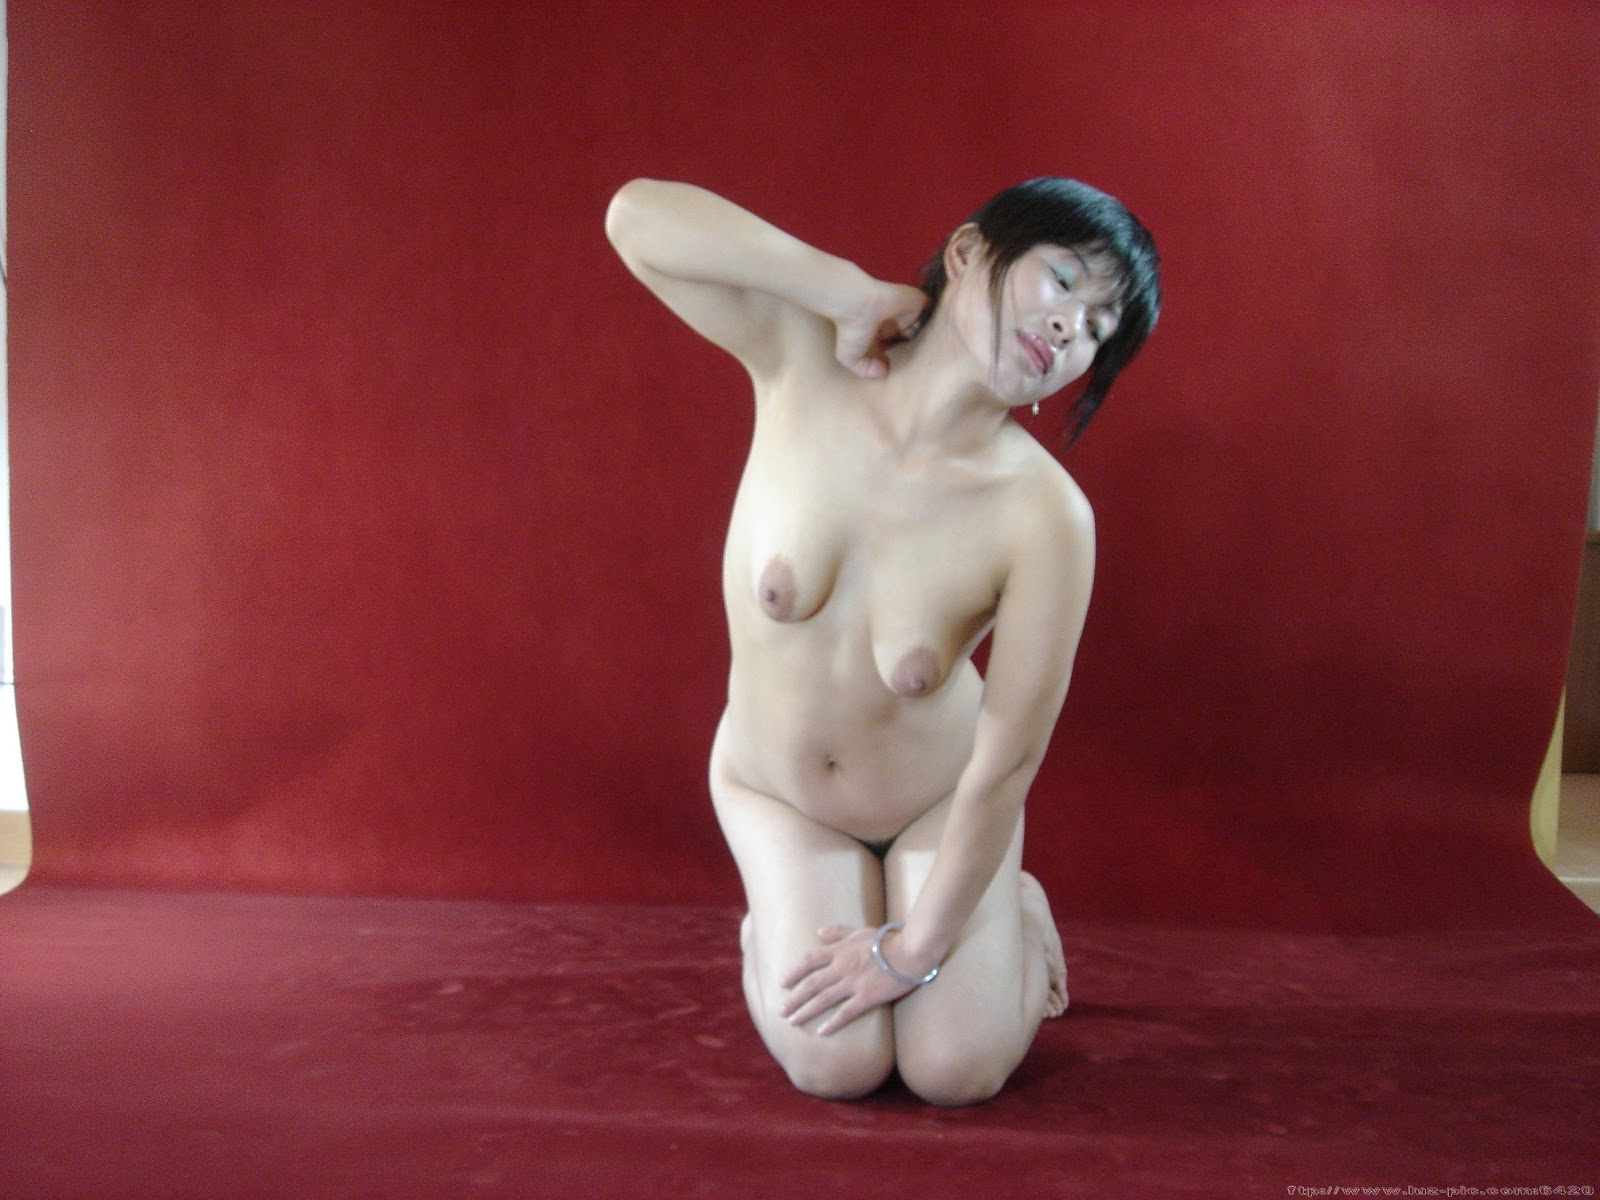 Chinese Nude_Art_Photos_-_232_-_XiaoSun.rar